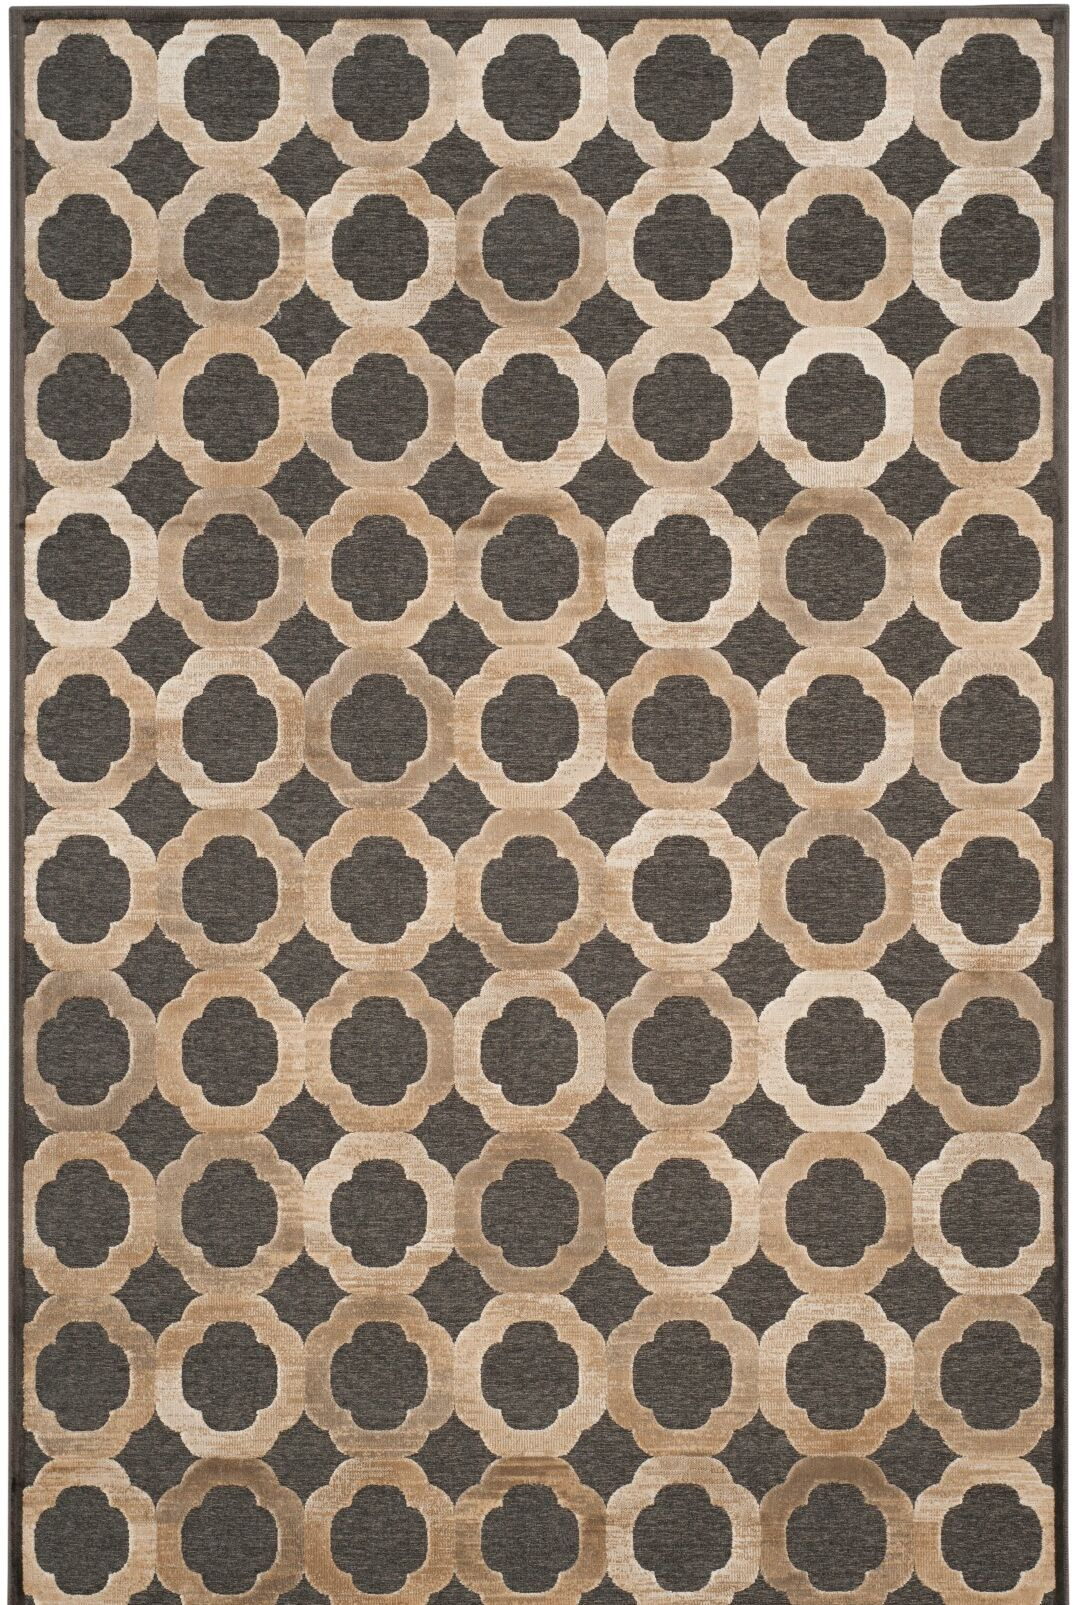 Martha Stewart Soft Anthracite / Anthracite Area Rug Rug Size: Rectangle 8' x 10'